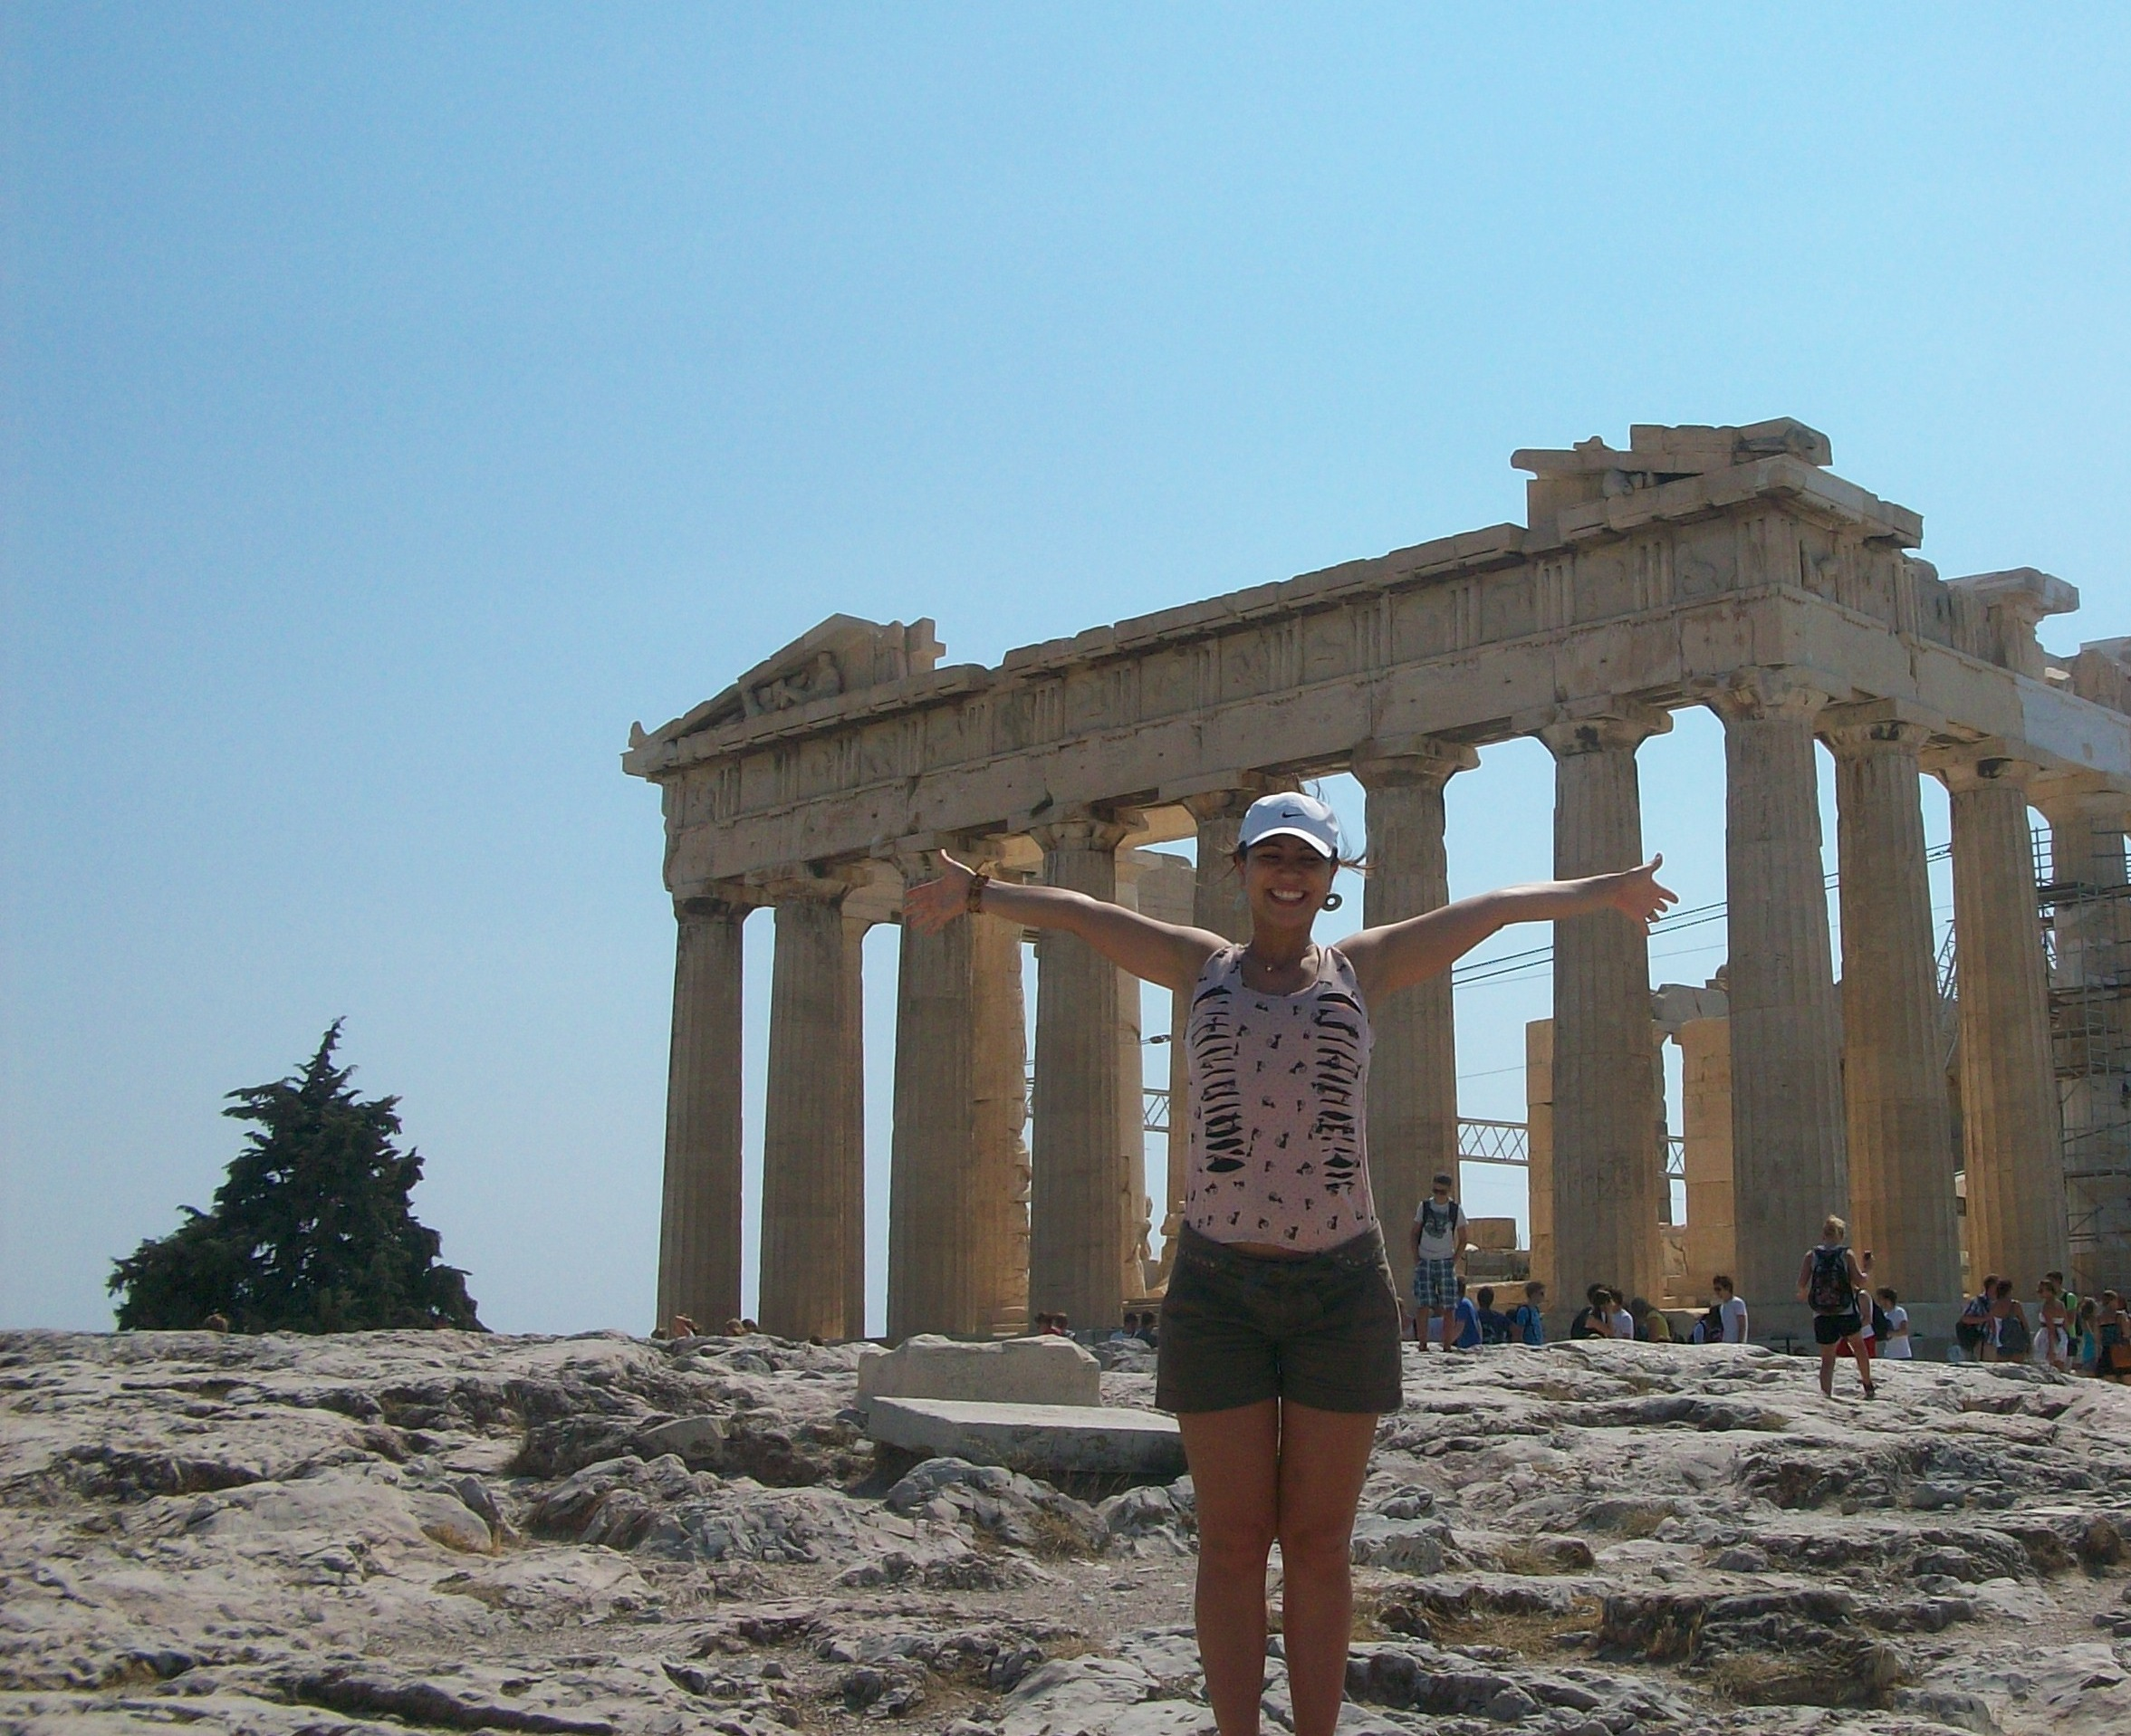 Athens & Classical Greece